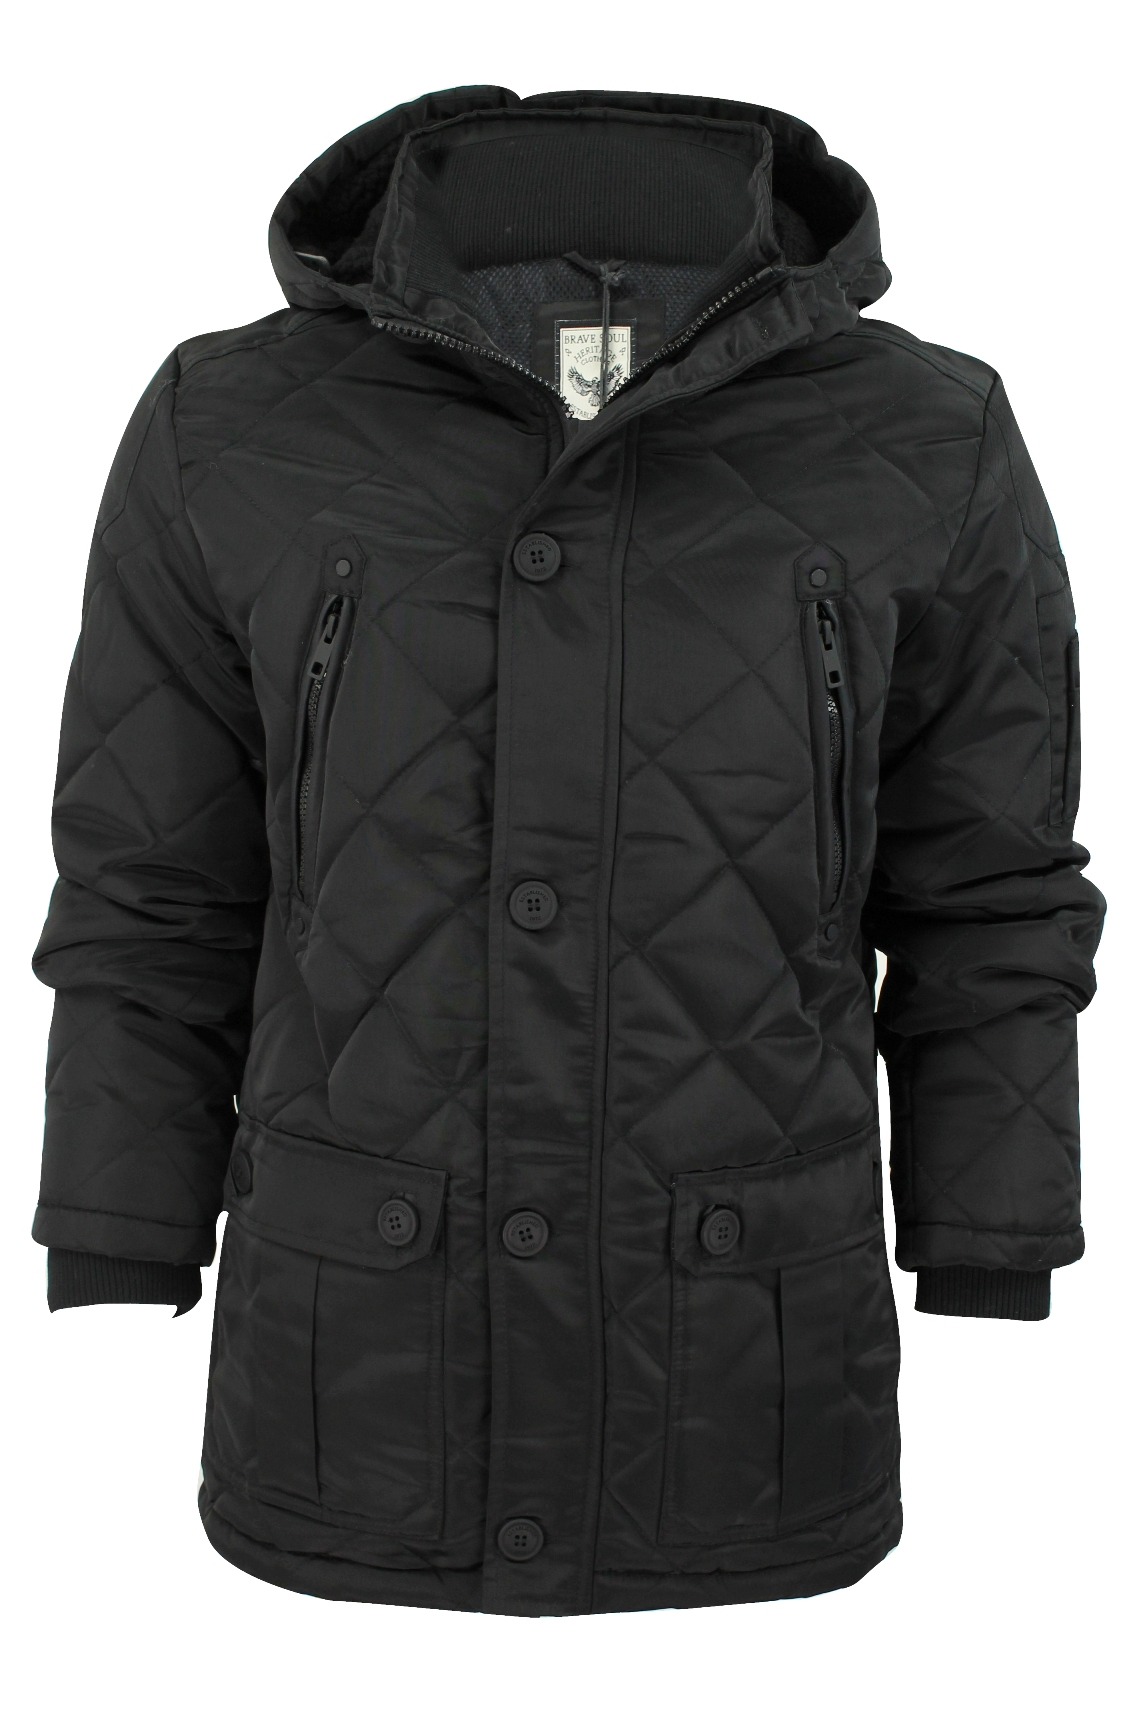 Mens Quilted Hooded Jacket by Brave Soul 'Scout' | eBay : mens quilted hooded jacket - Adamdwight.com